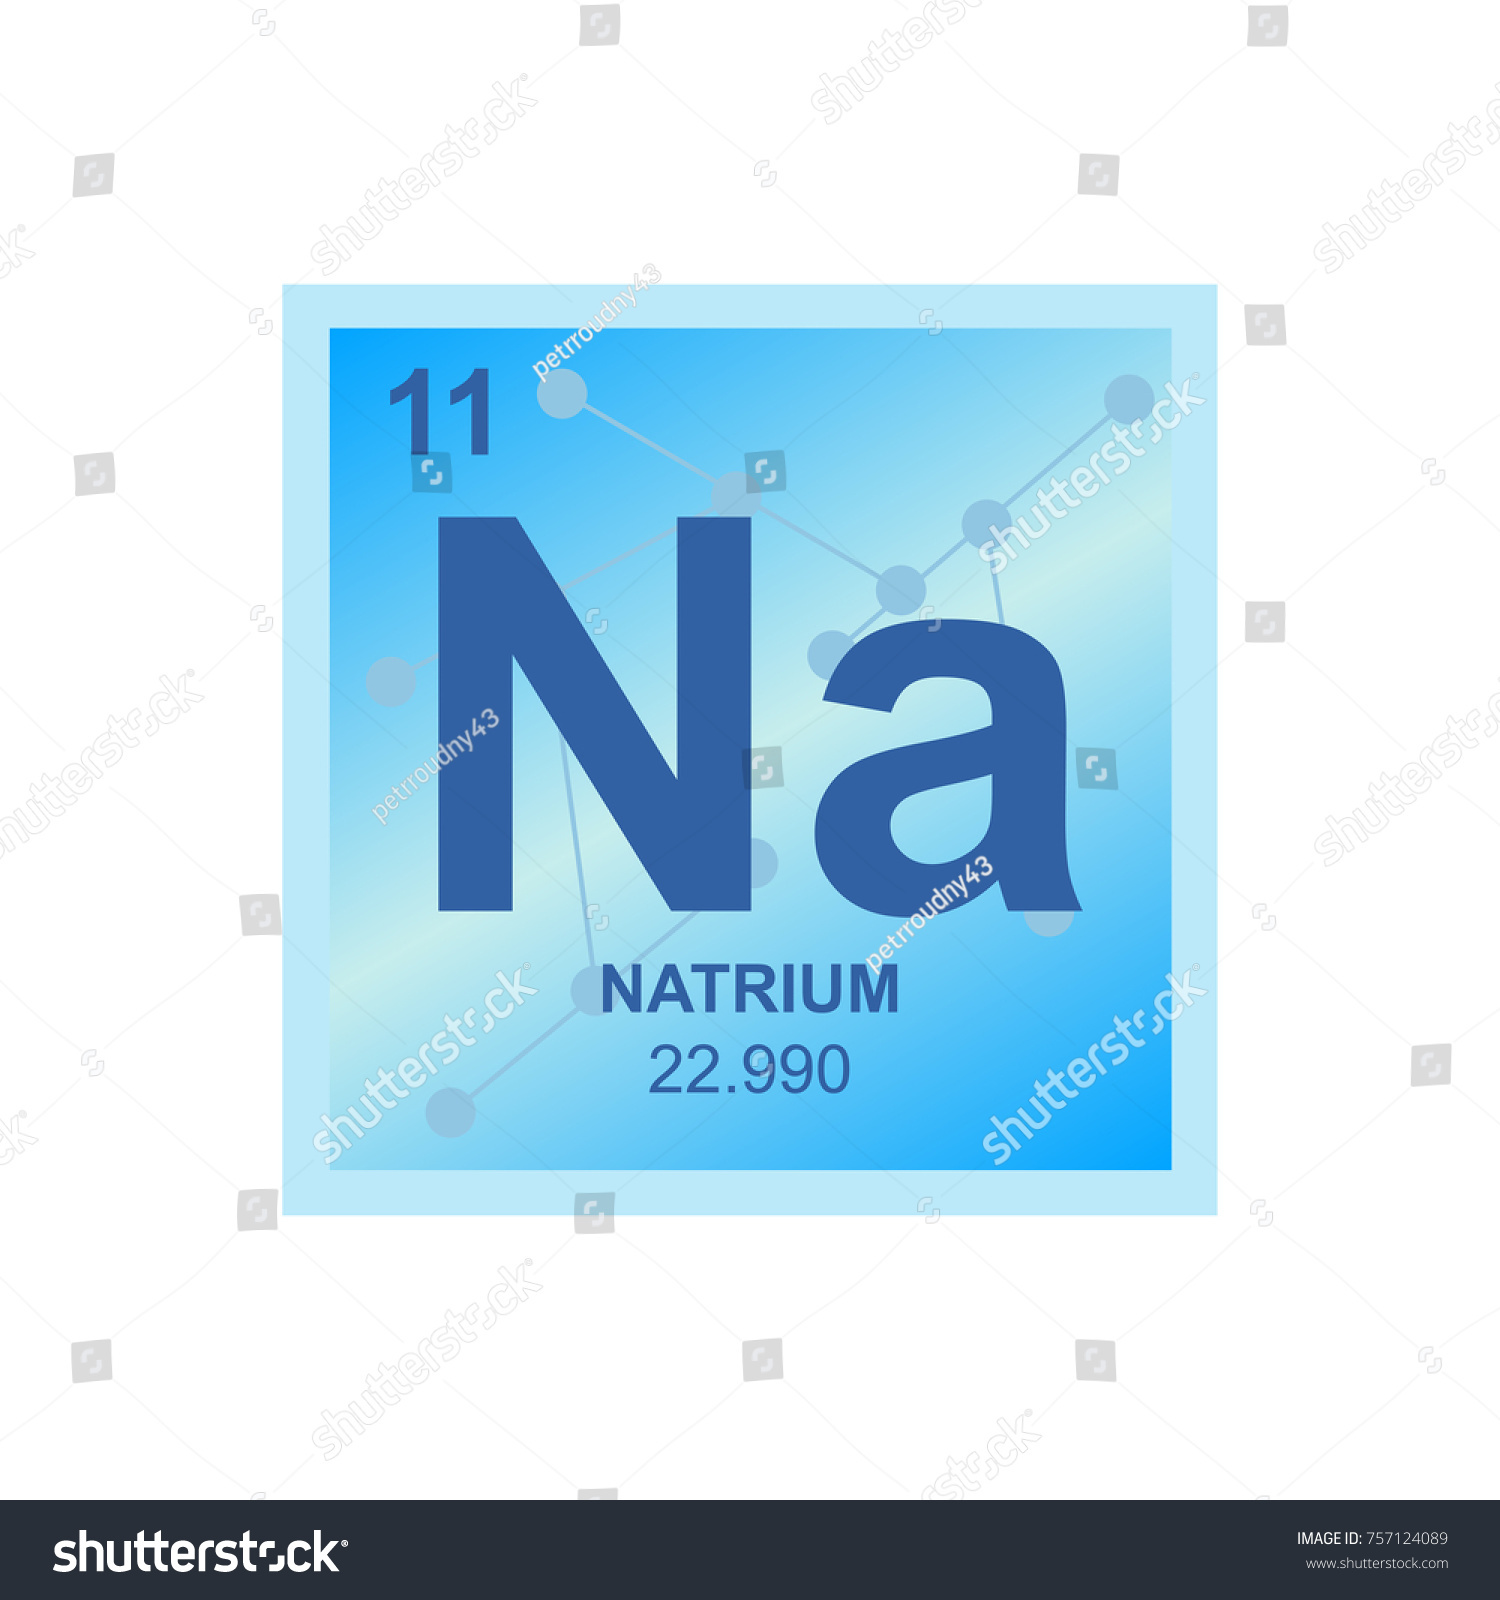 Salt symbol periodic table image collections periodic table images indium symbol periodic table gallery periodic table images salt symbol periodic table images periodic table images gamestrikefo Gallery